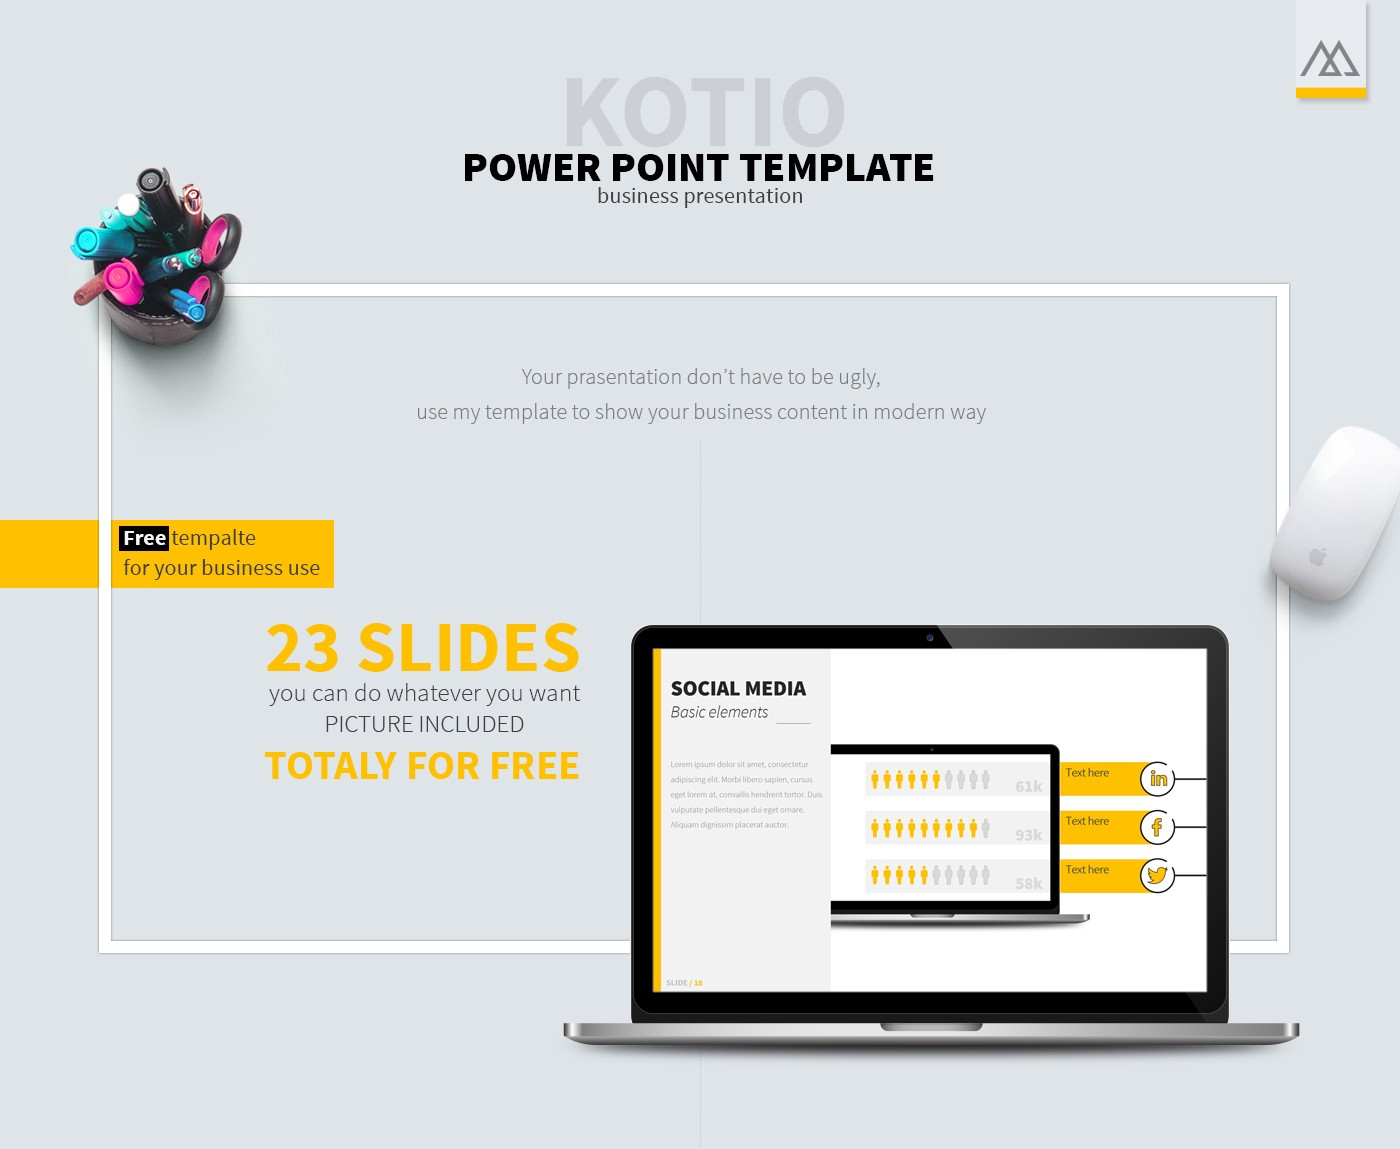 40 free cool powerpoint templates for presentations download wajeb Choice Image